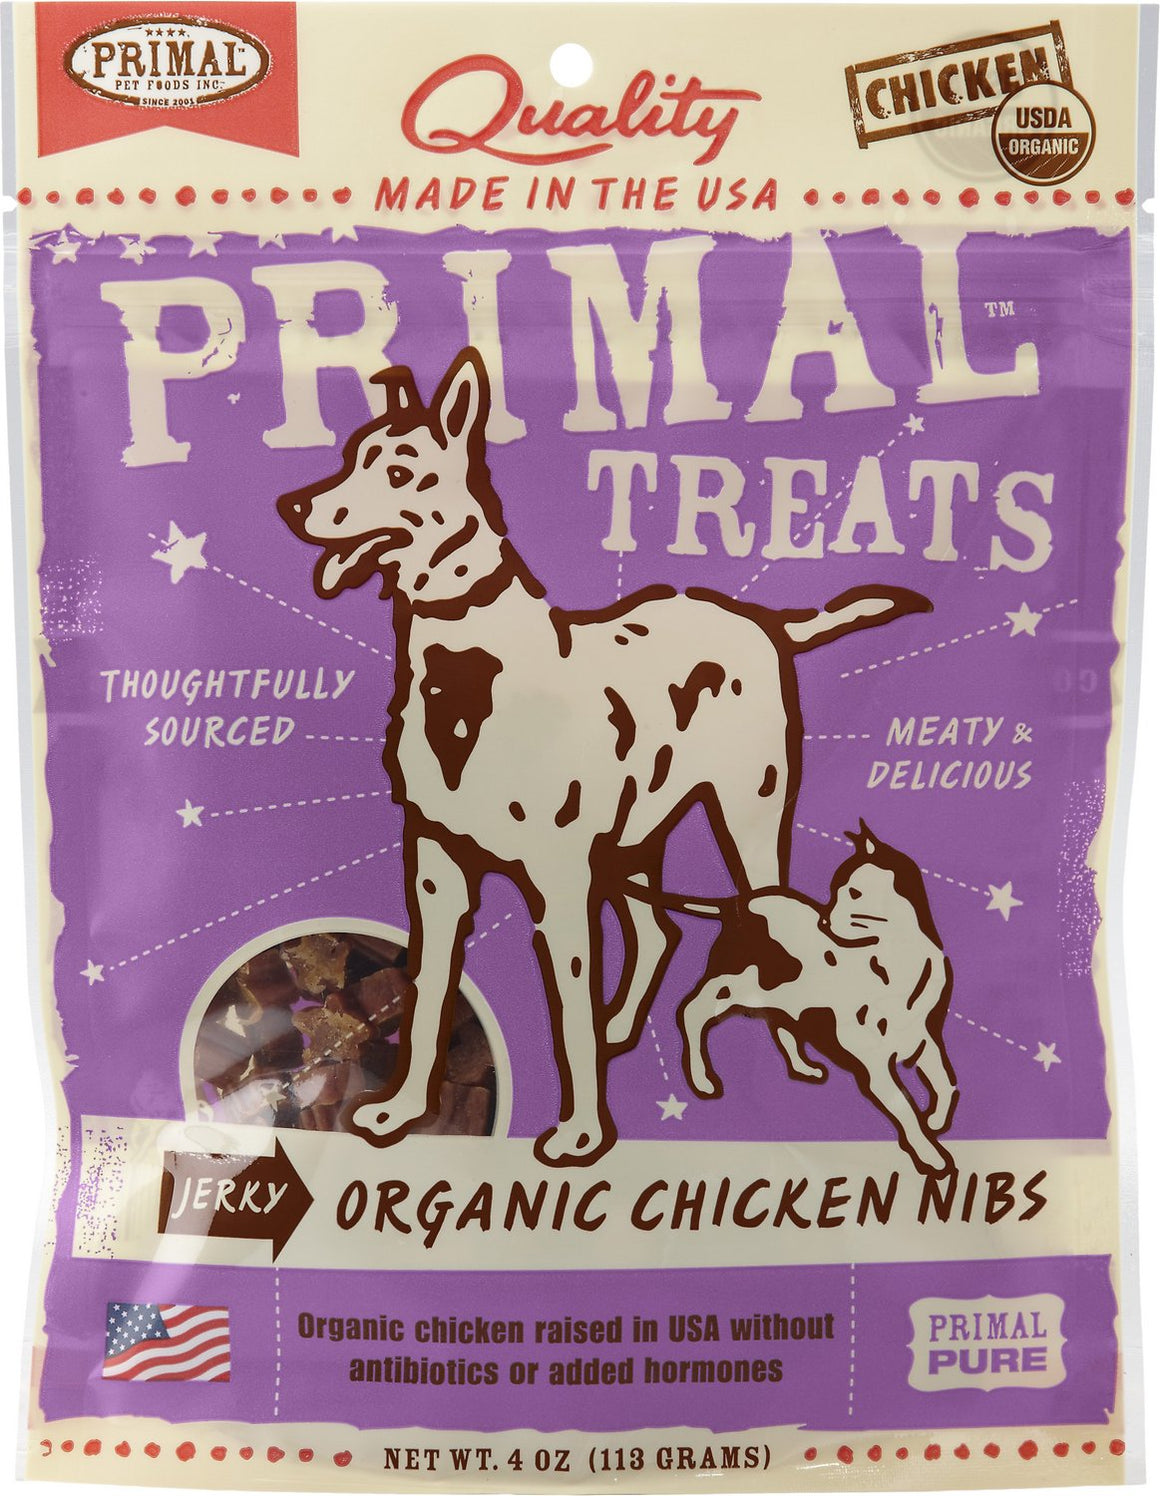 Primal Organic Chicken Nibs Jerky Grain-Free Dog and Cat Treats, 4oz.